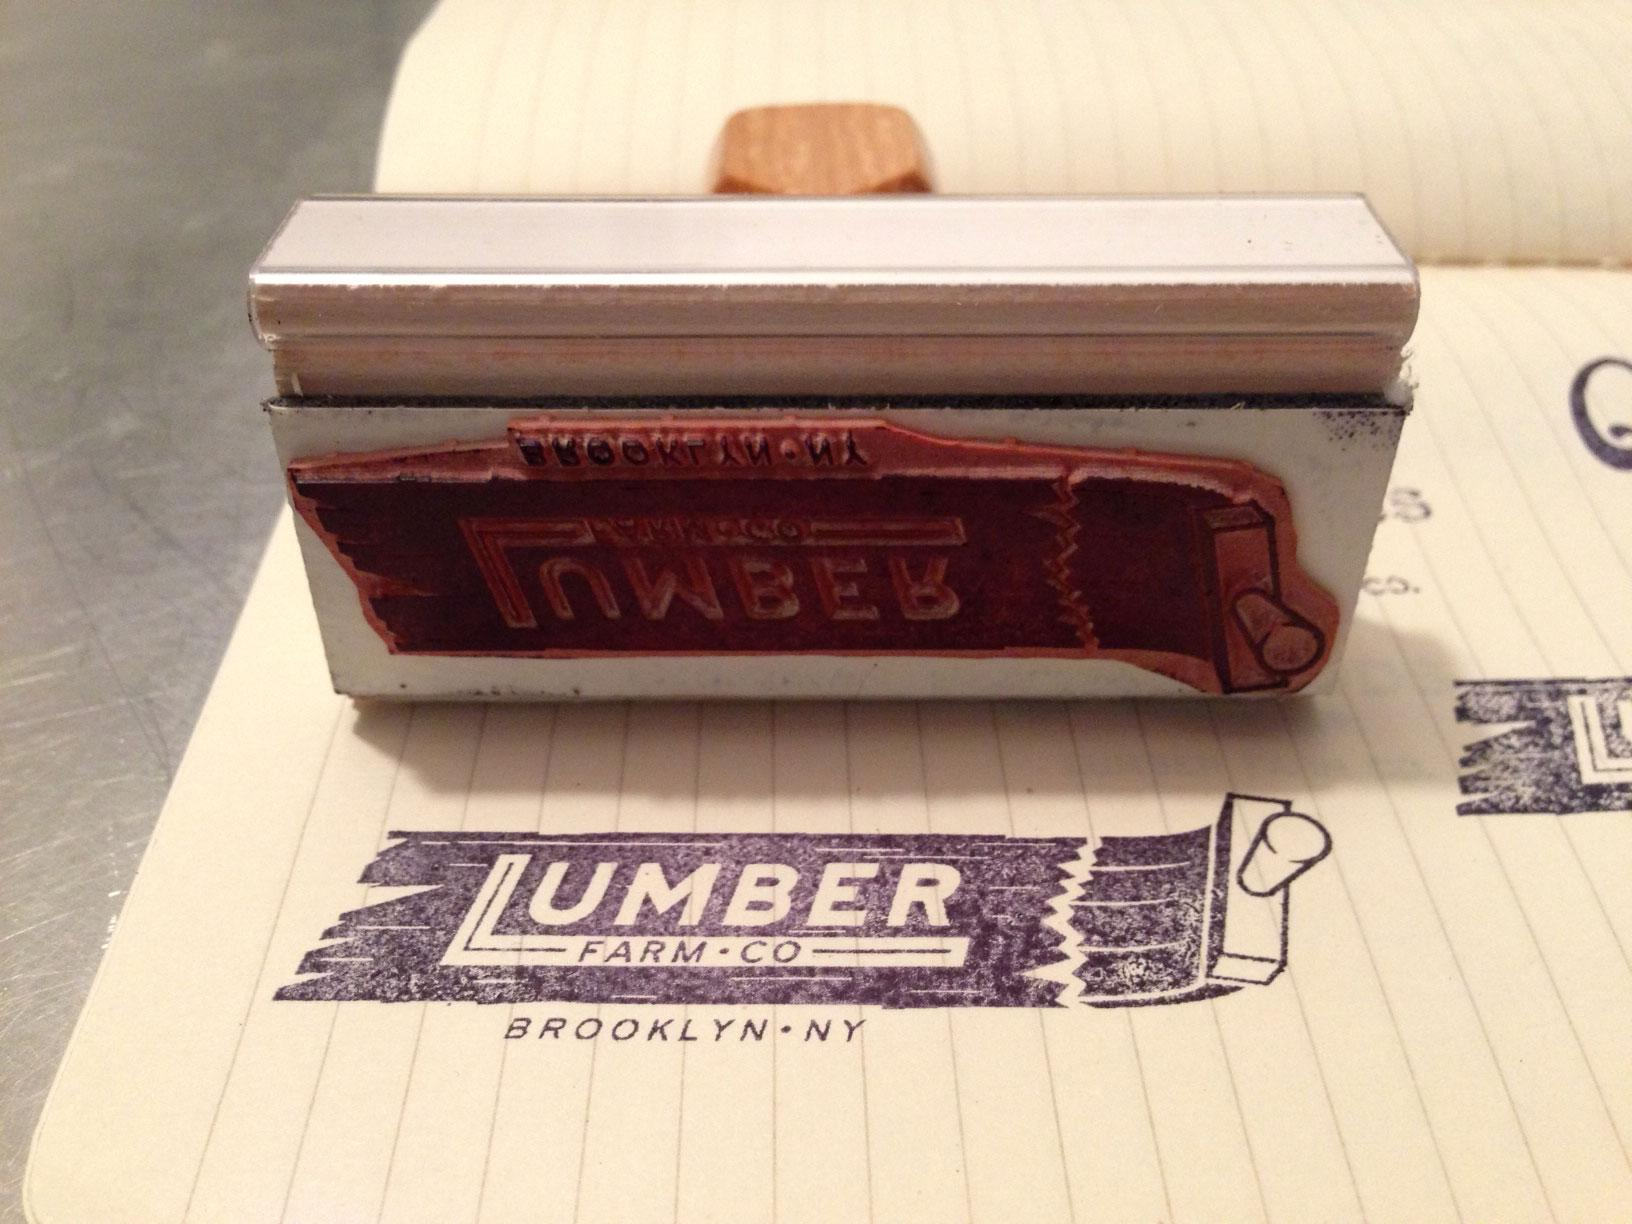 The Lumber Farm - image 9 - student project